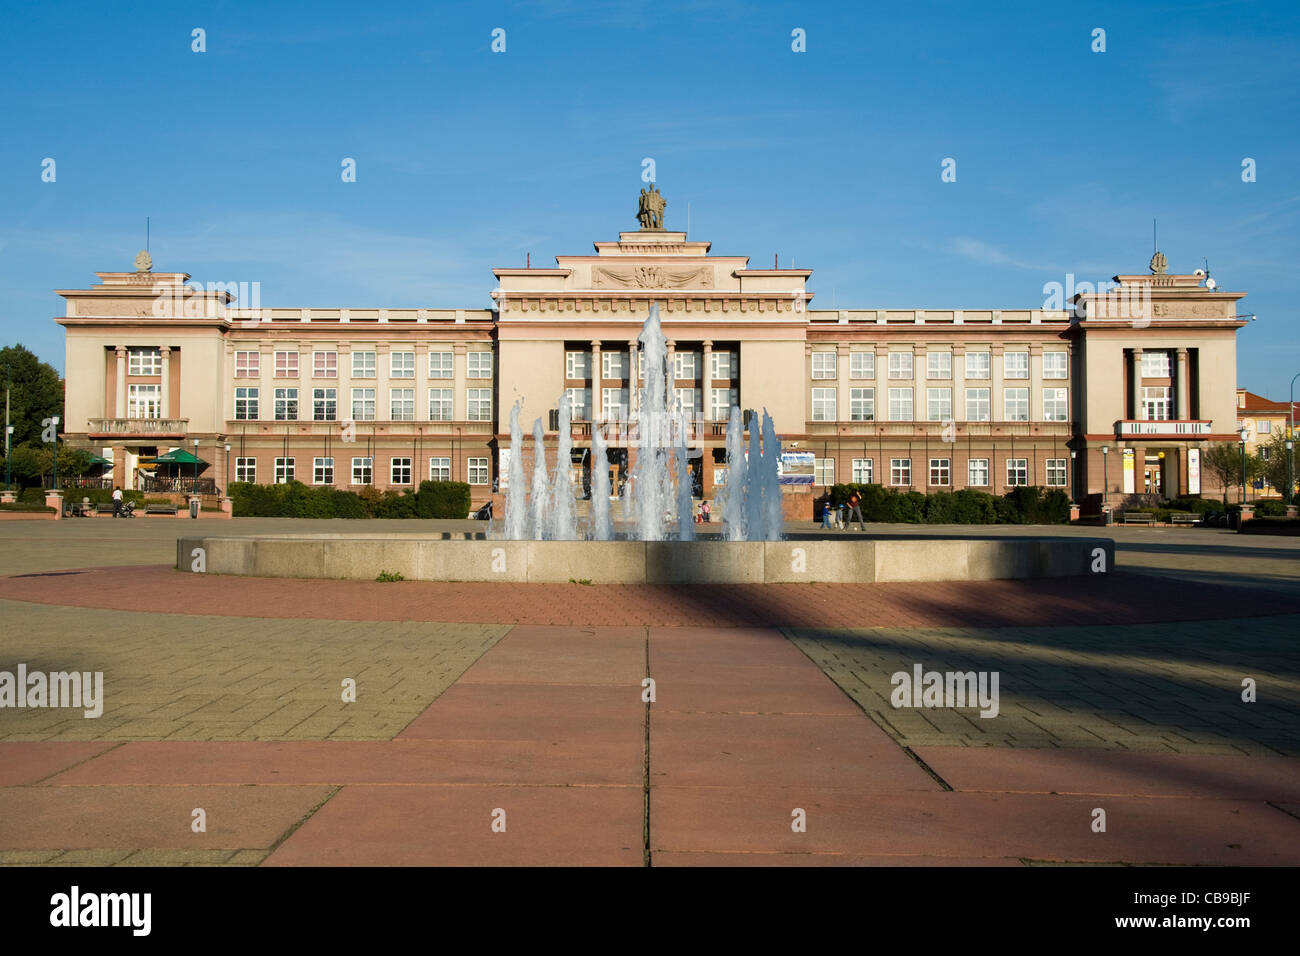 Culture House in Ostrov, Social realism architecture - Stock Image